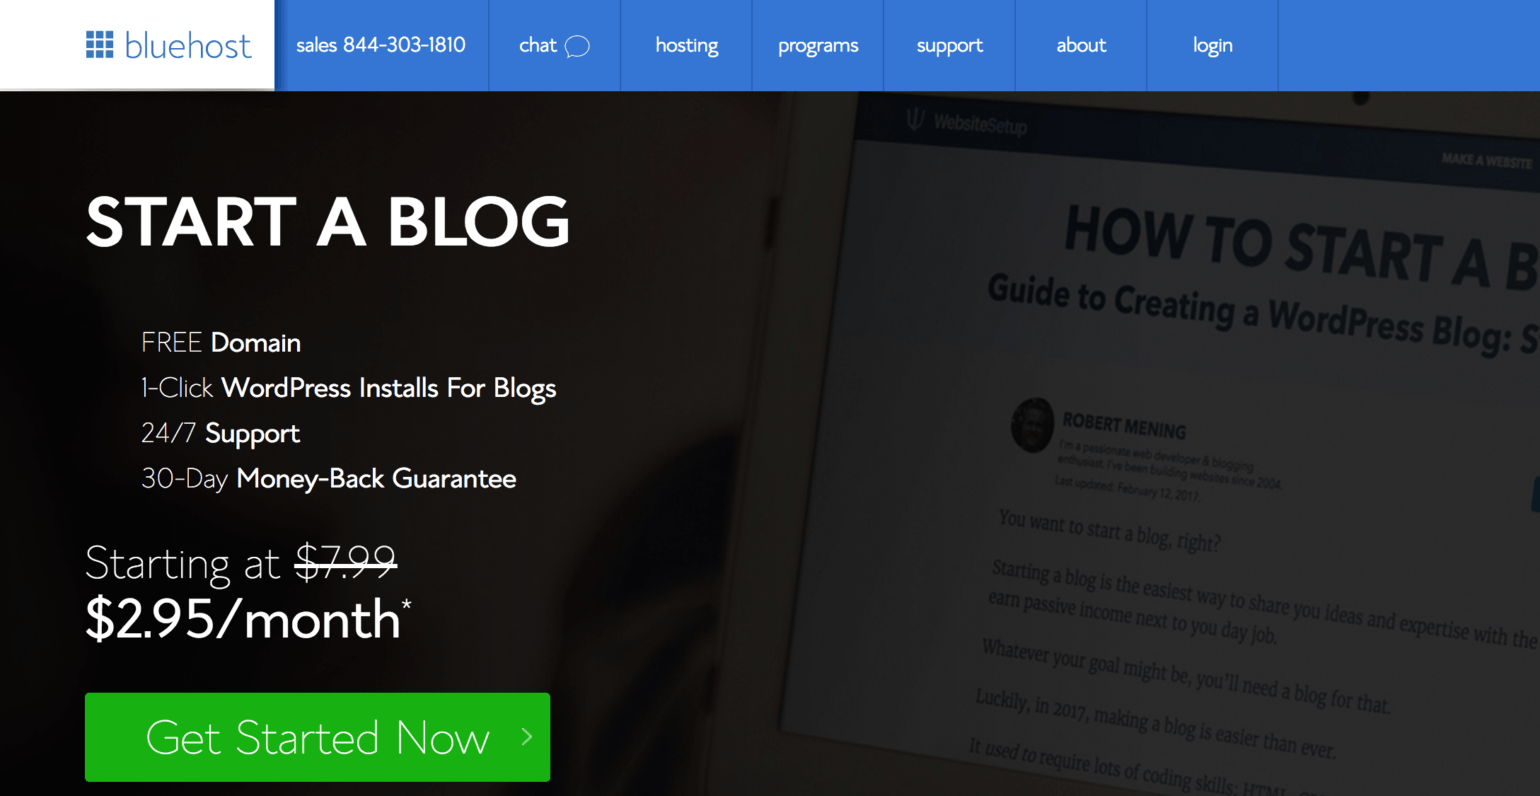 To build and promote a website and save it with the free information - Bluehost